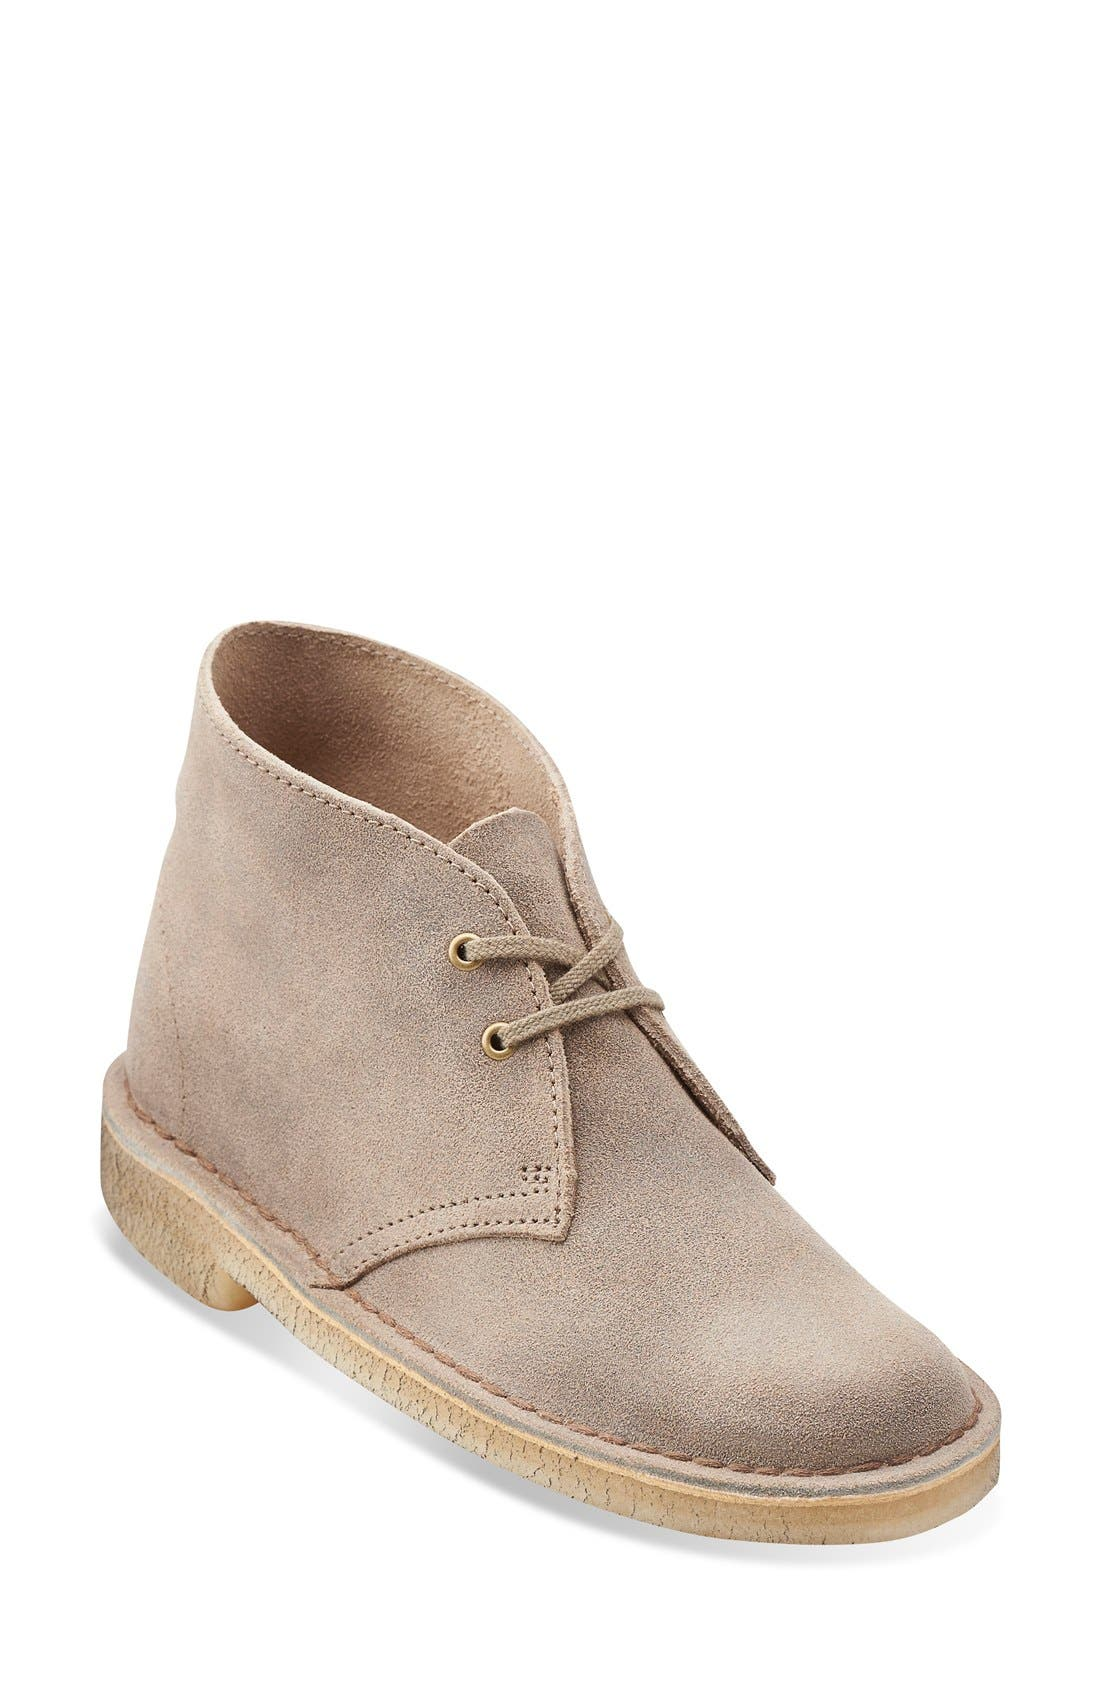 Desert Boot,                         Main,                         color, TAUPE DISTRESSED SUEDE